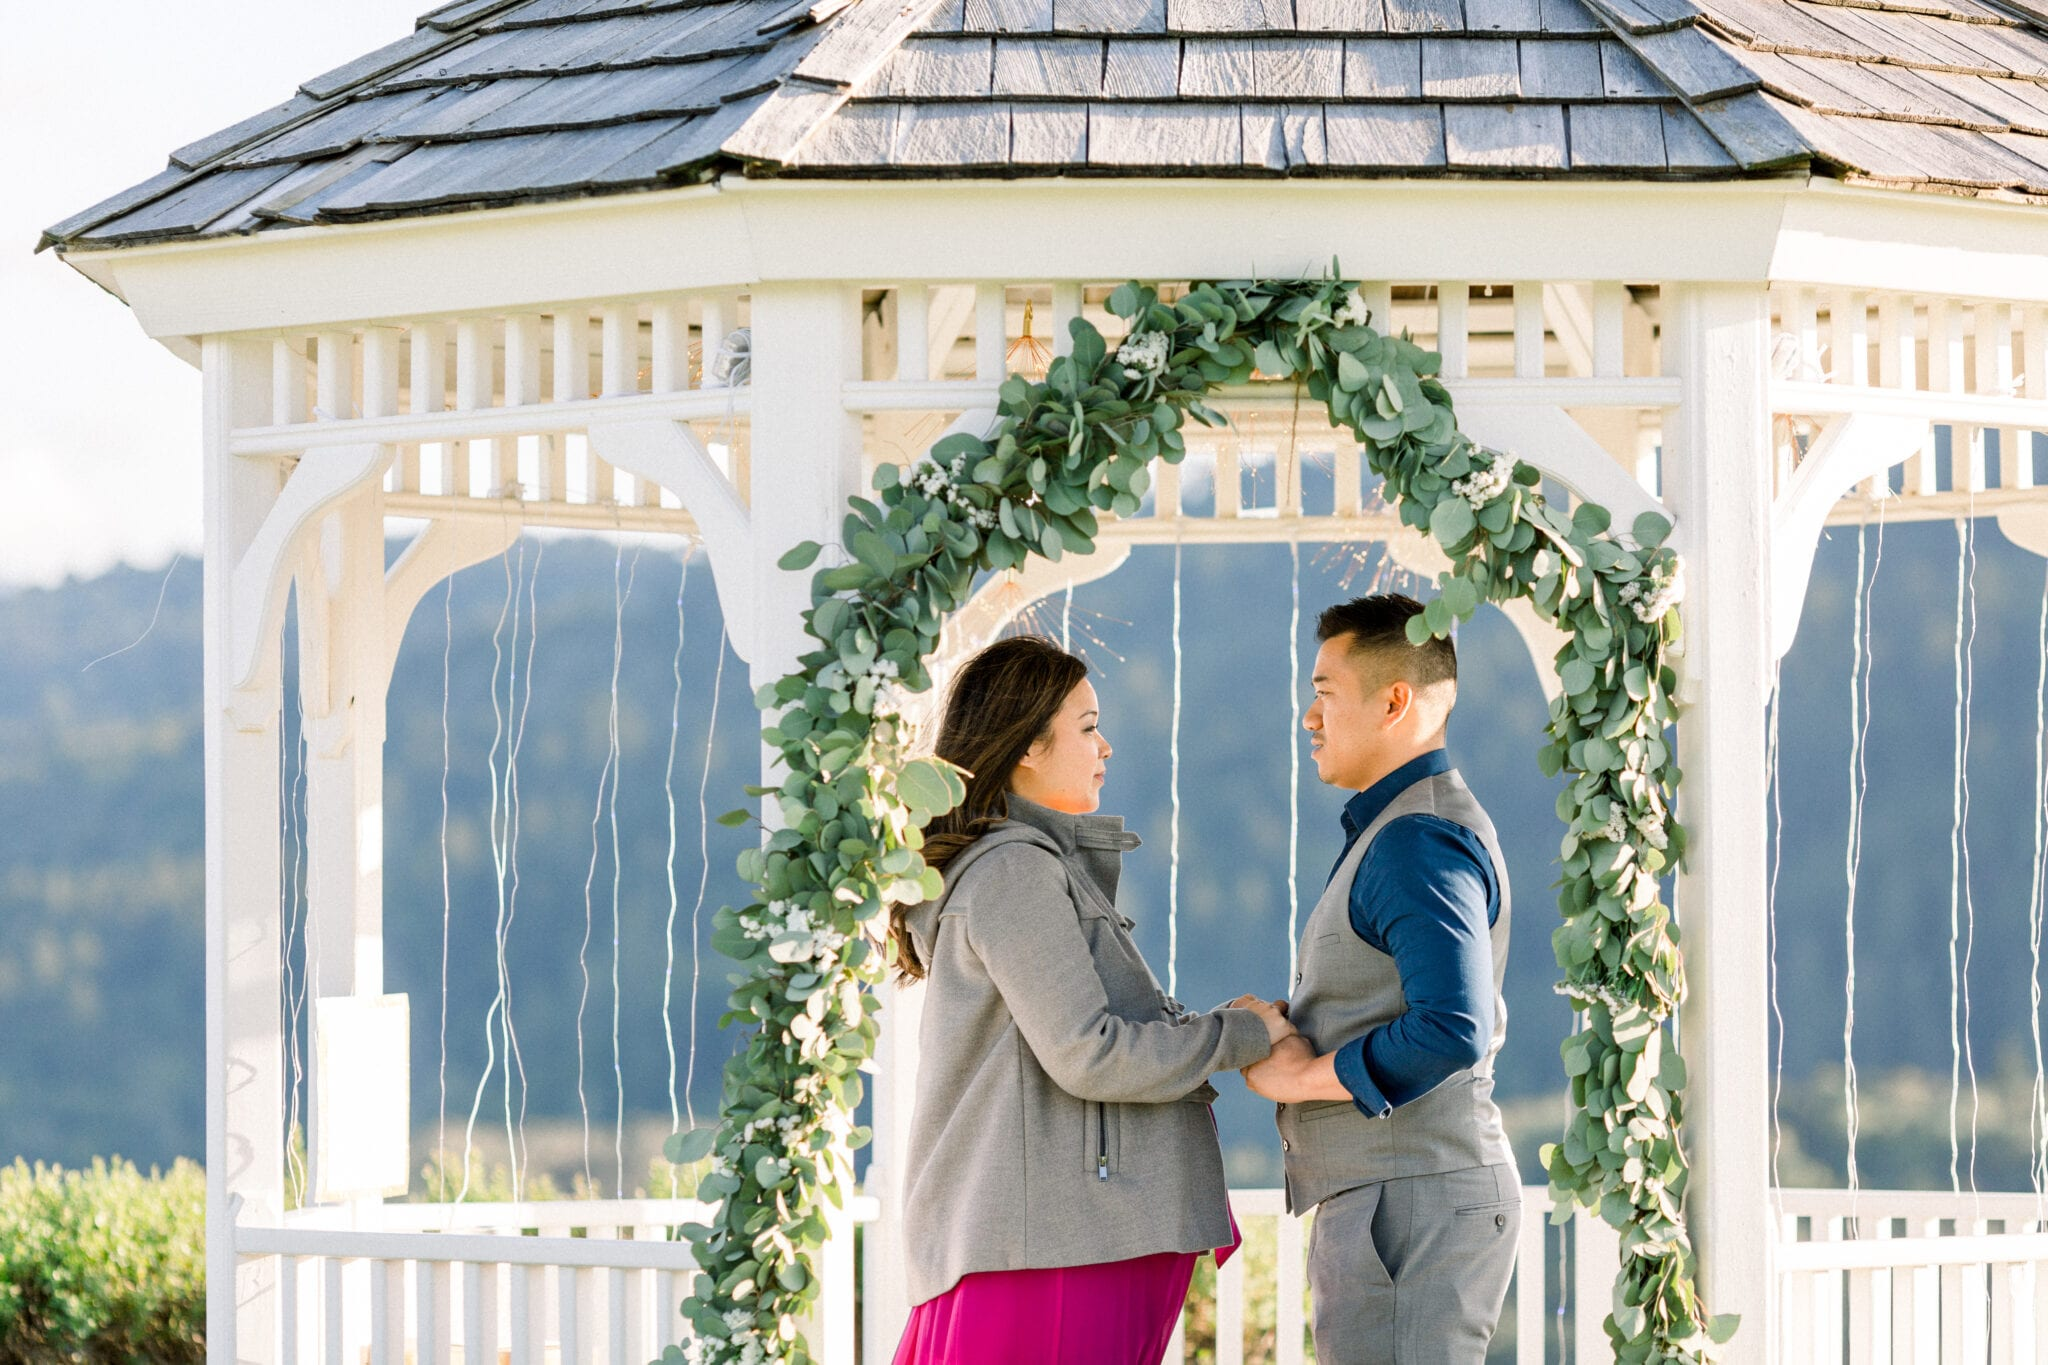 Couple holding hands in gazebo